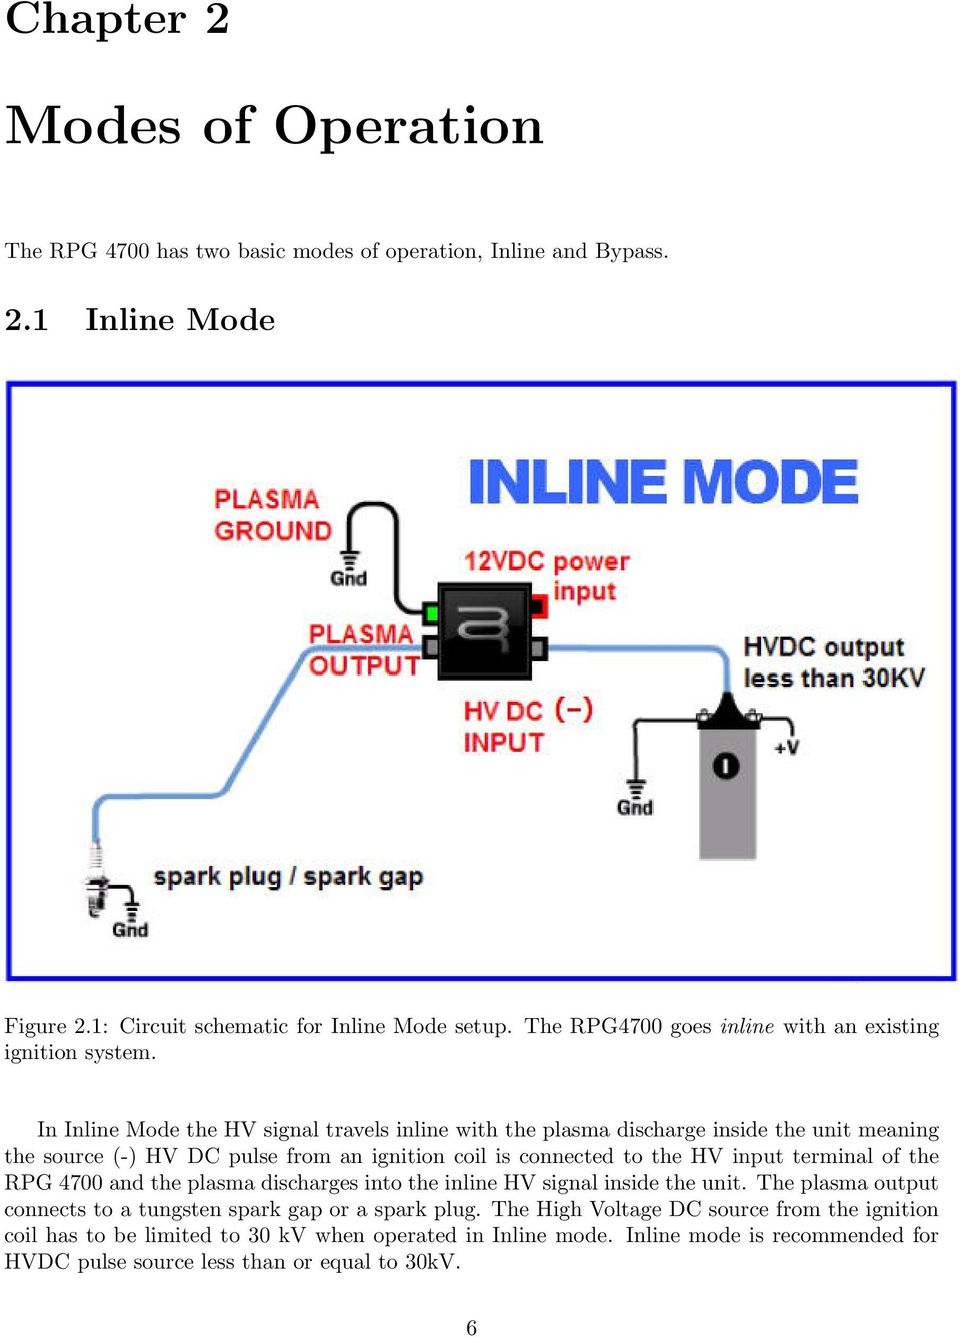 In Inline Mode the HV signal travels inline with the plasma discharge inside the unit meaning the source (-) HV DC pulse from an ignition coil is connected to the HV input terminal of